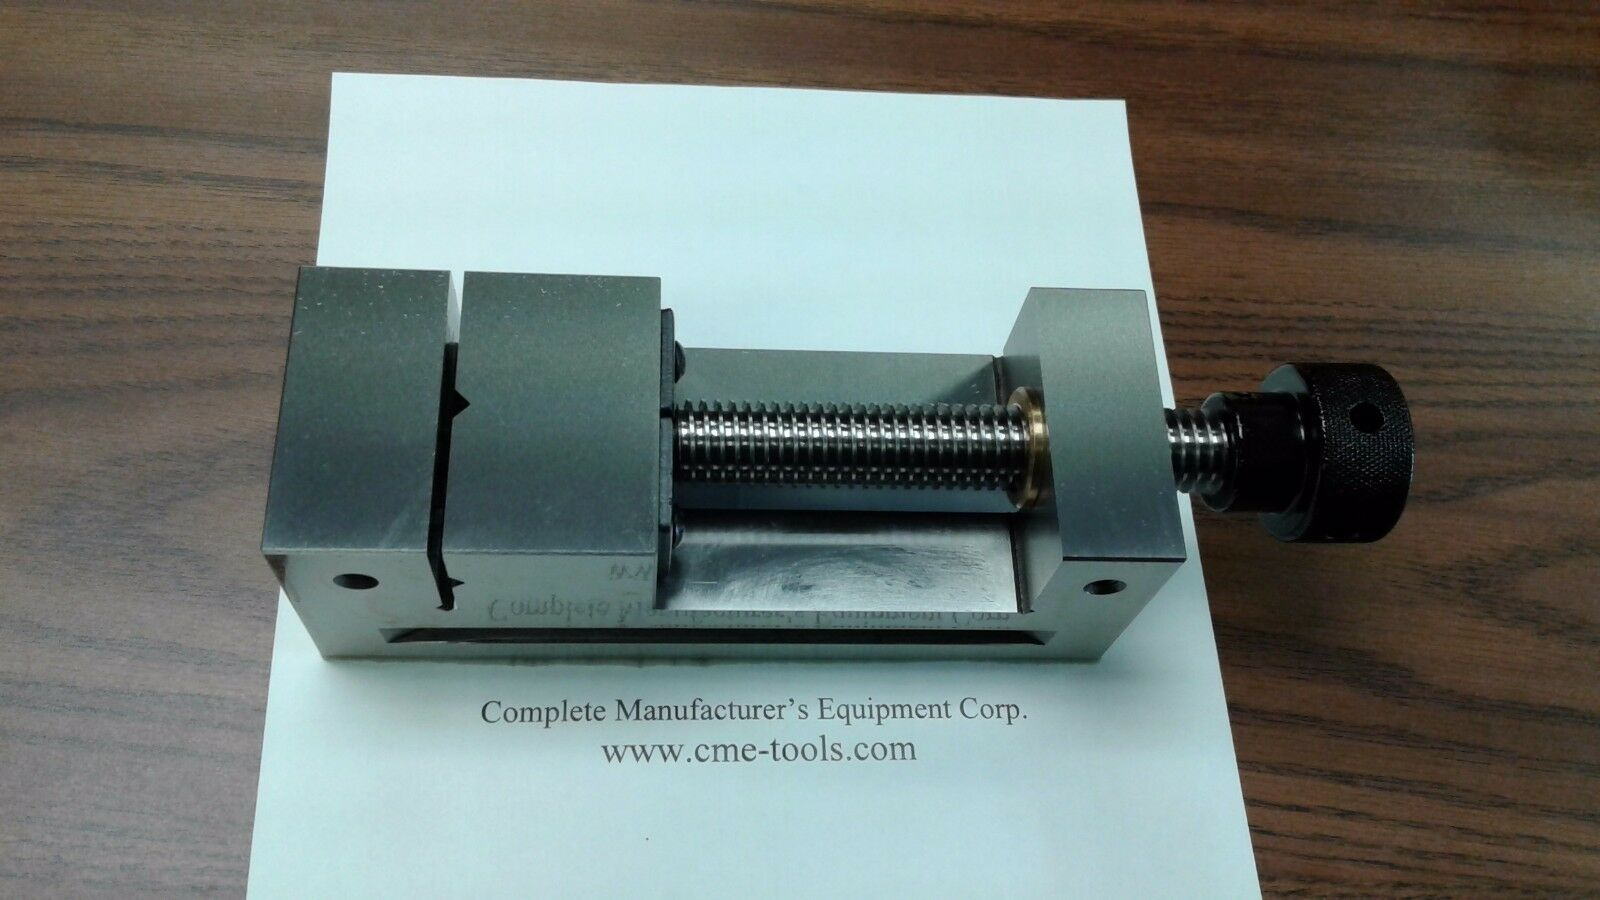 """4/"""" DOUBLE LOCK CNC PRECISION VISE 20/"""" overall length #8500-DL4-S NEW"""